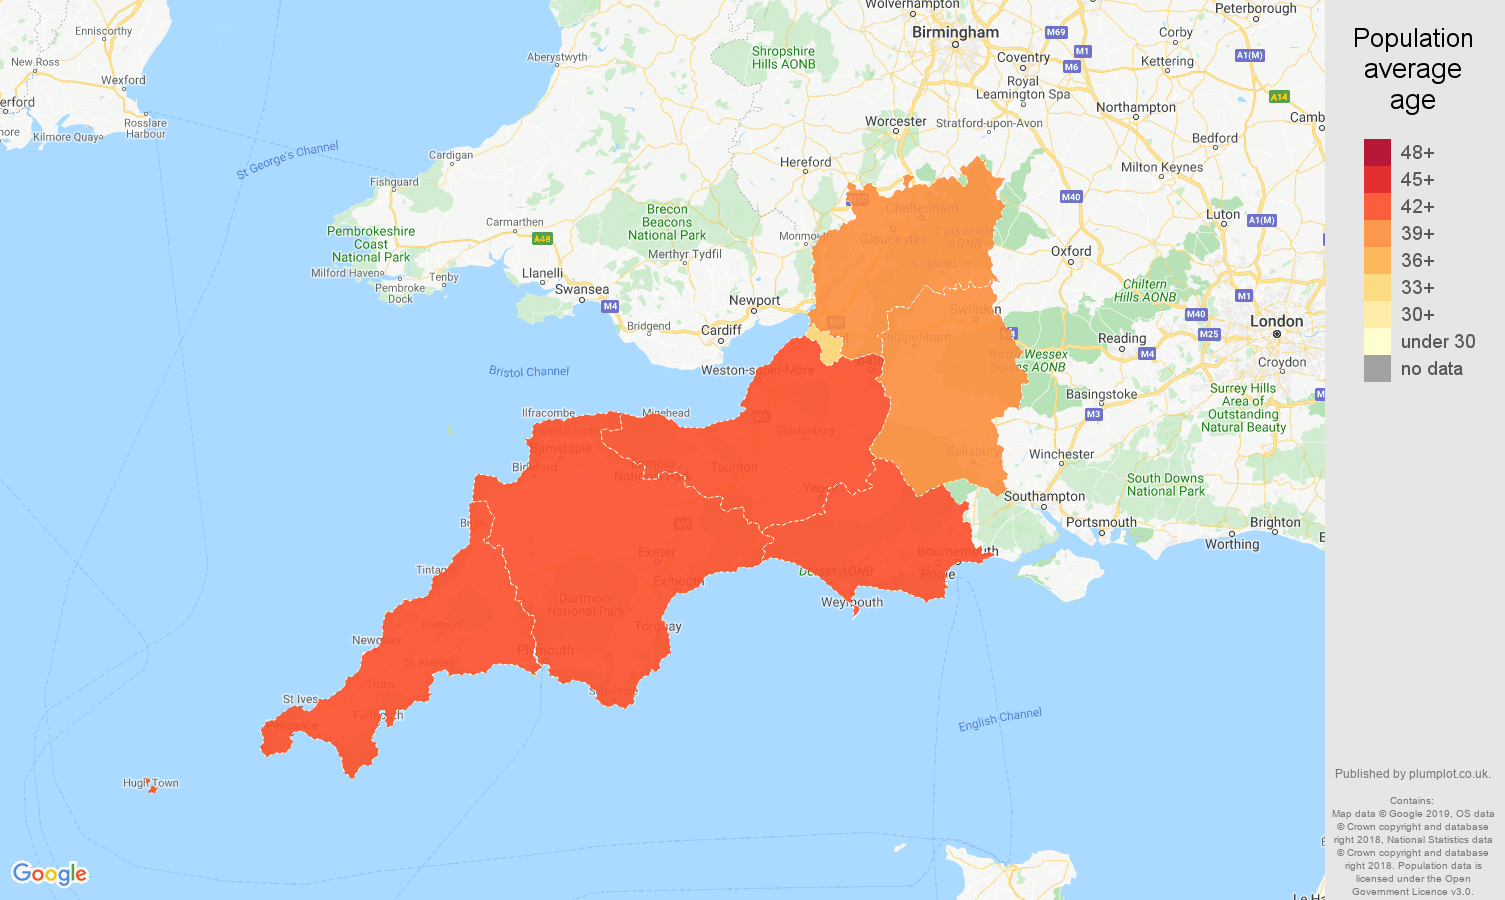 South West population average age map